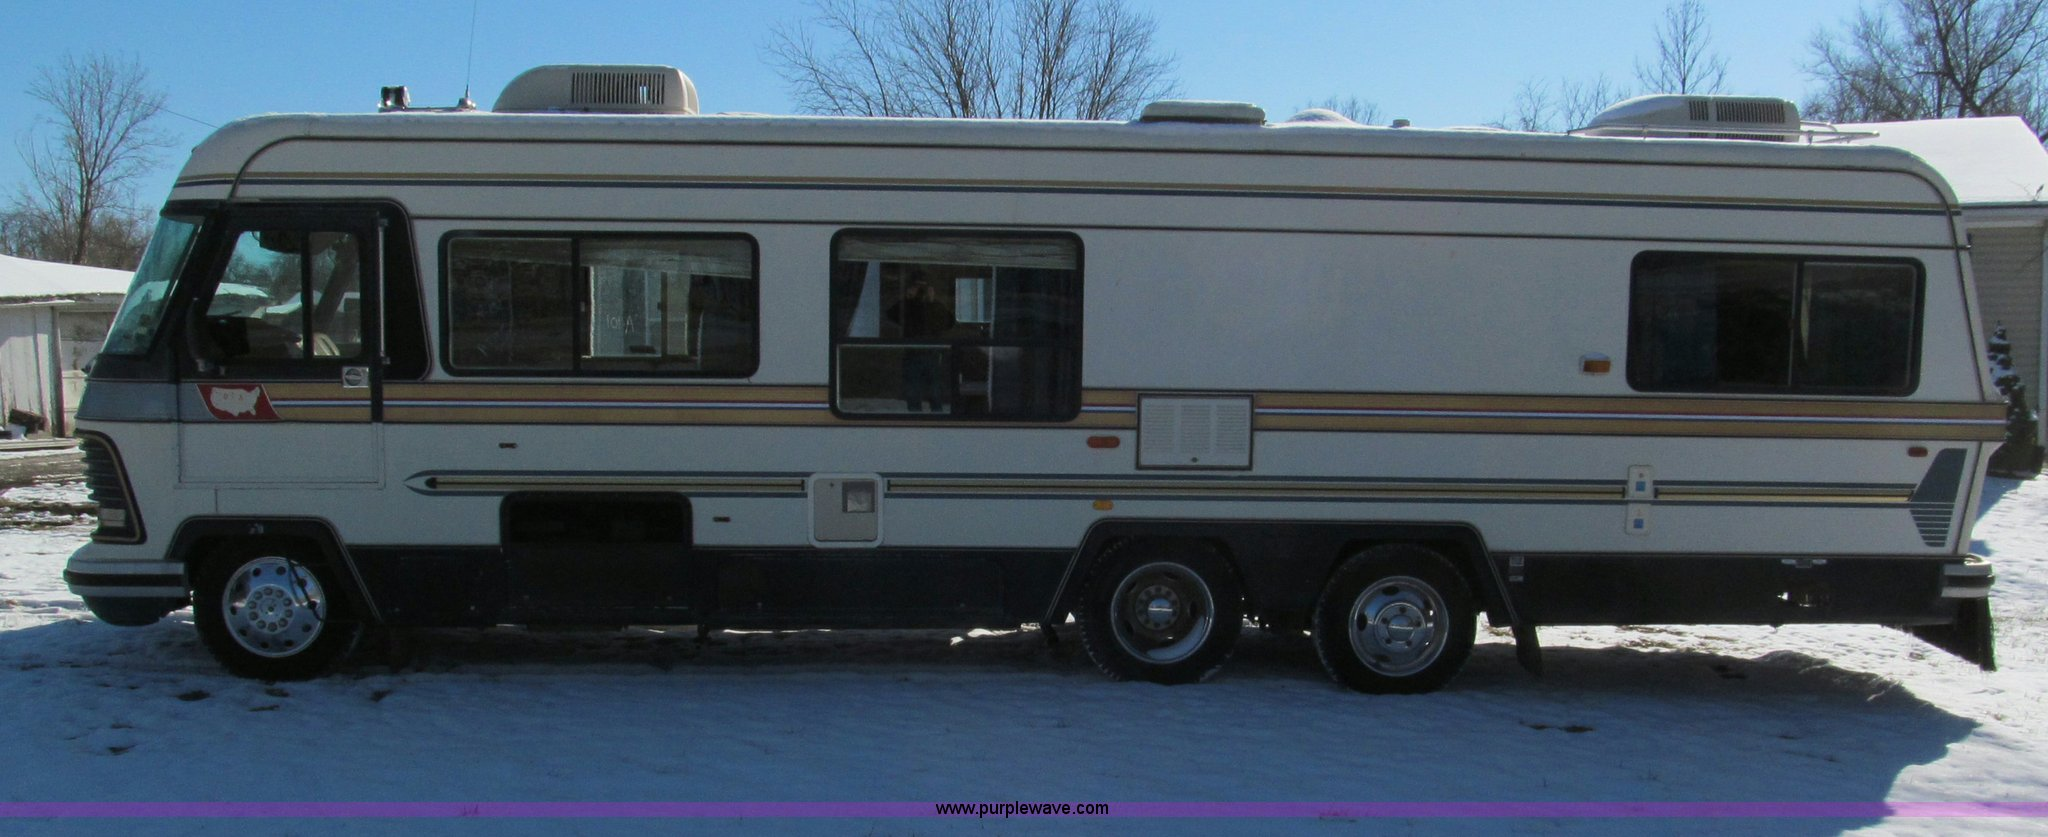 1986 Holiday rambler owners Manual